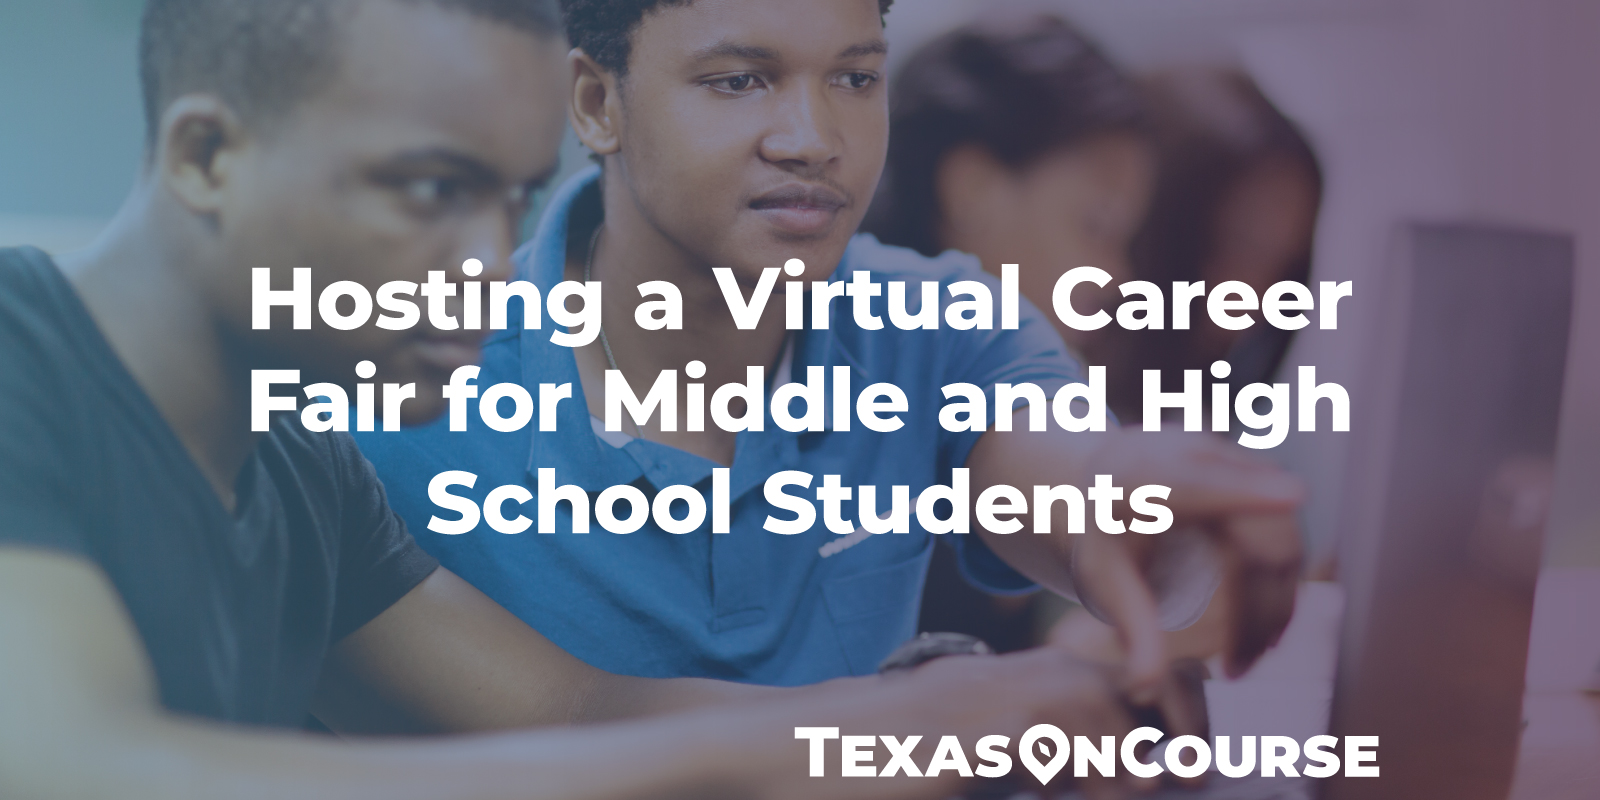 Hosting a Virtual Career Fair for Middle and High School Students